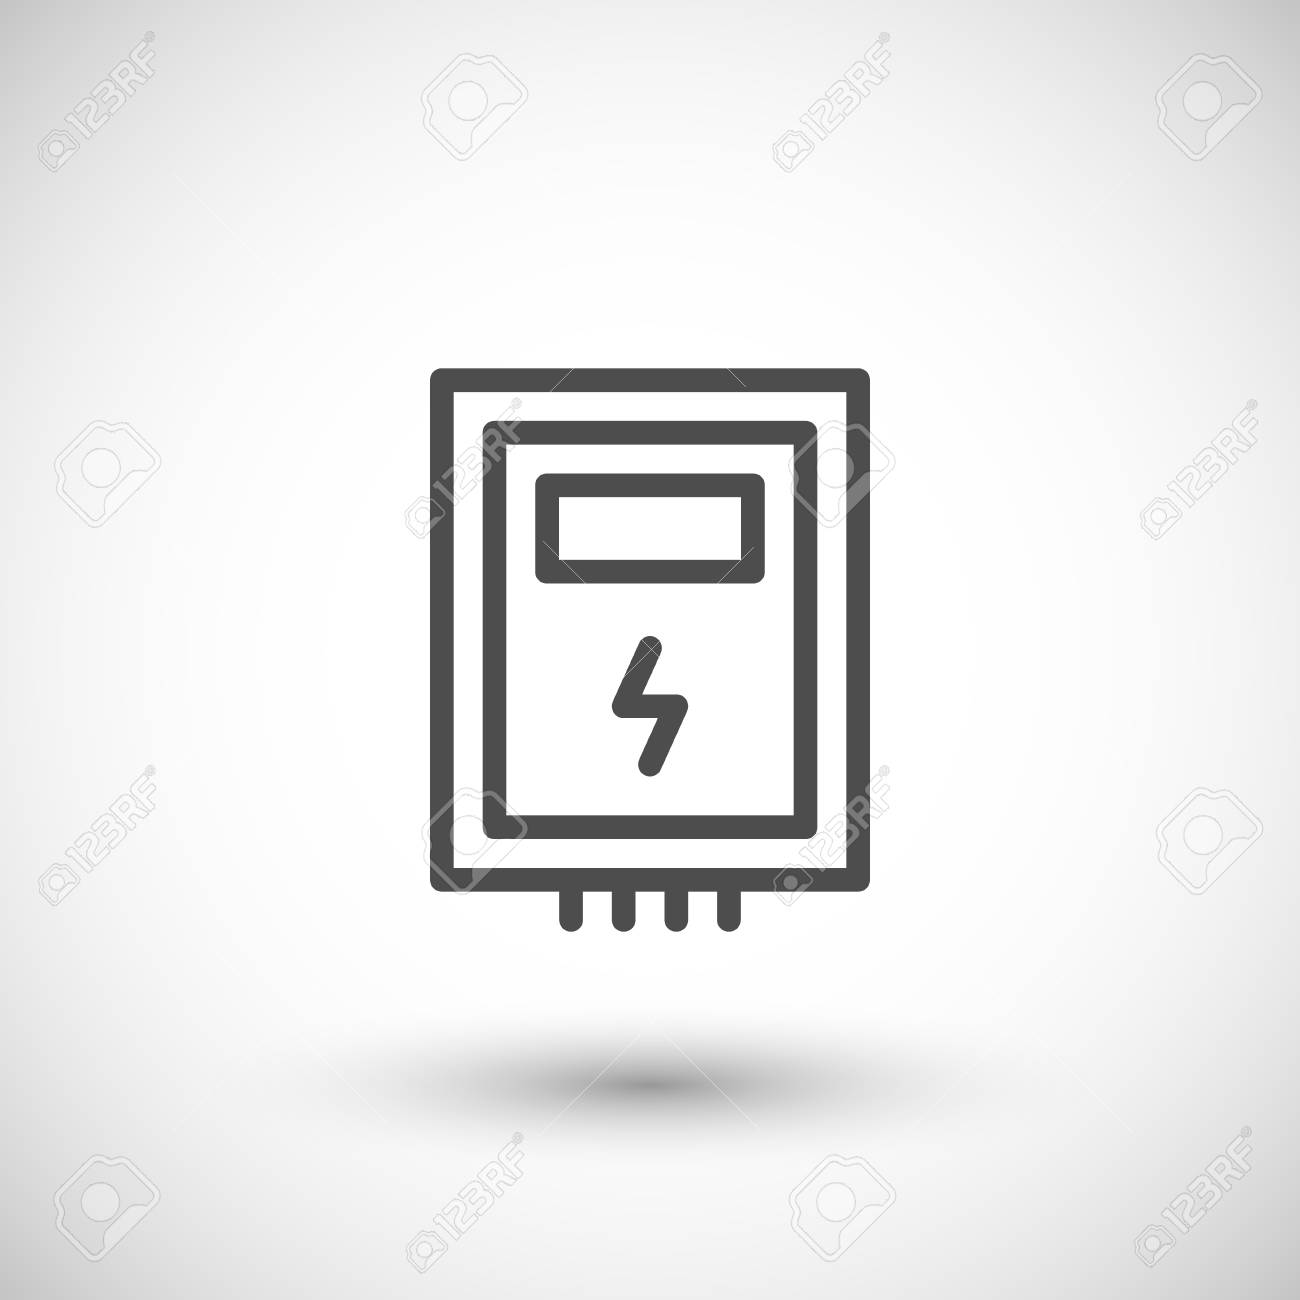 electric box line icon royalty free cliparts vectors and stock rh 123rf com fuse box concert fuse box concert